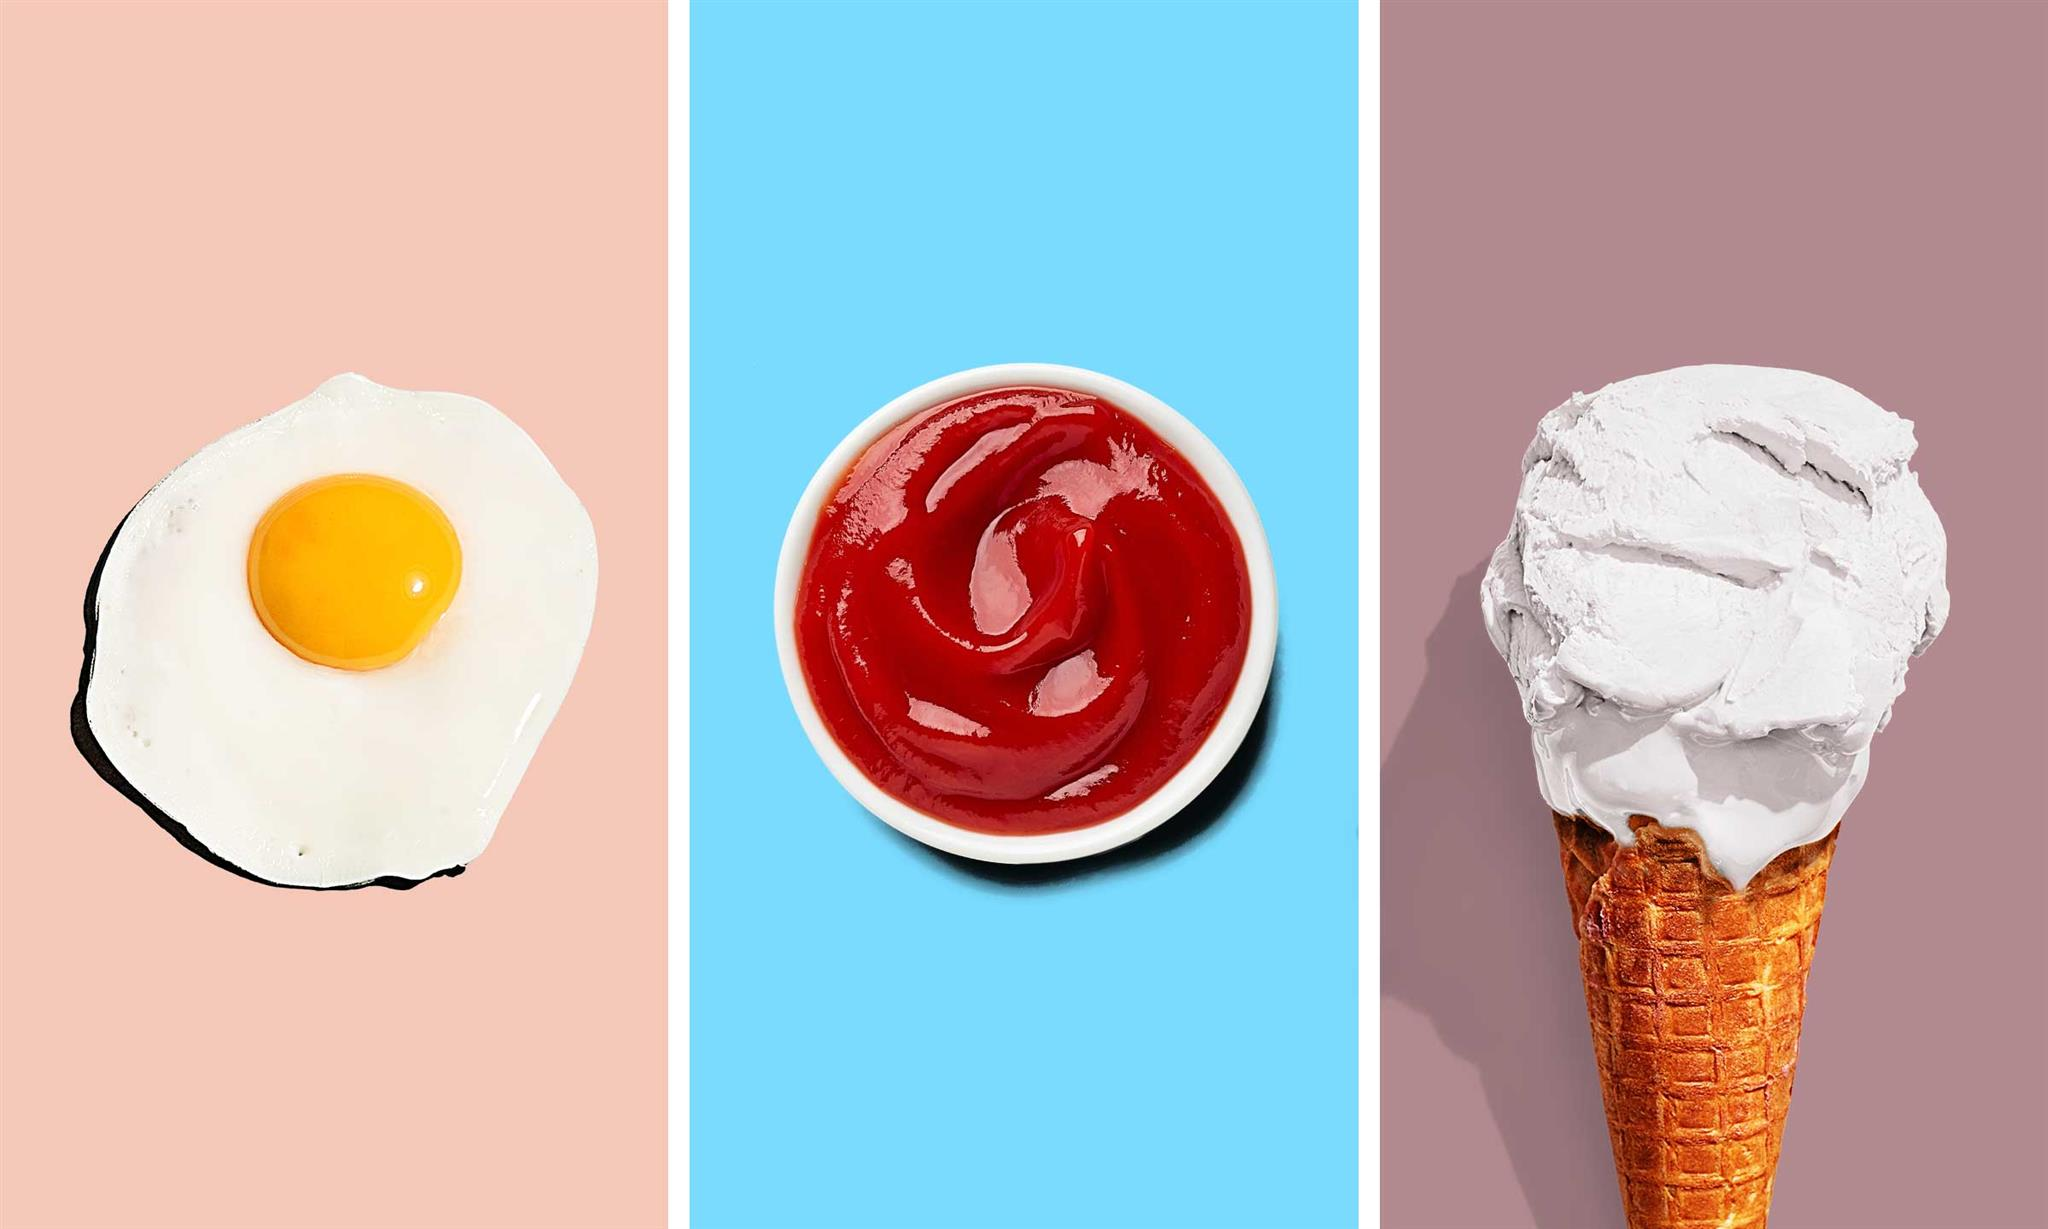 Fried egg, ketchup, ice cream